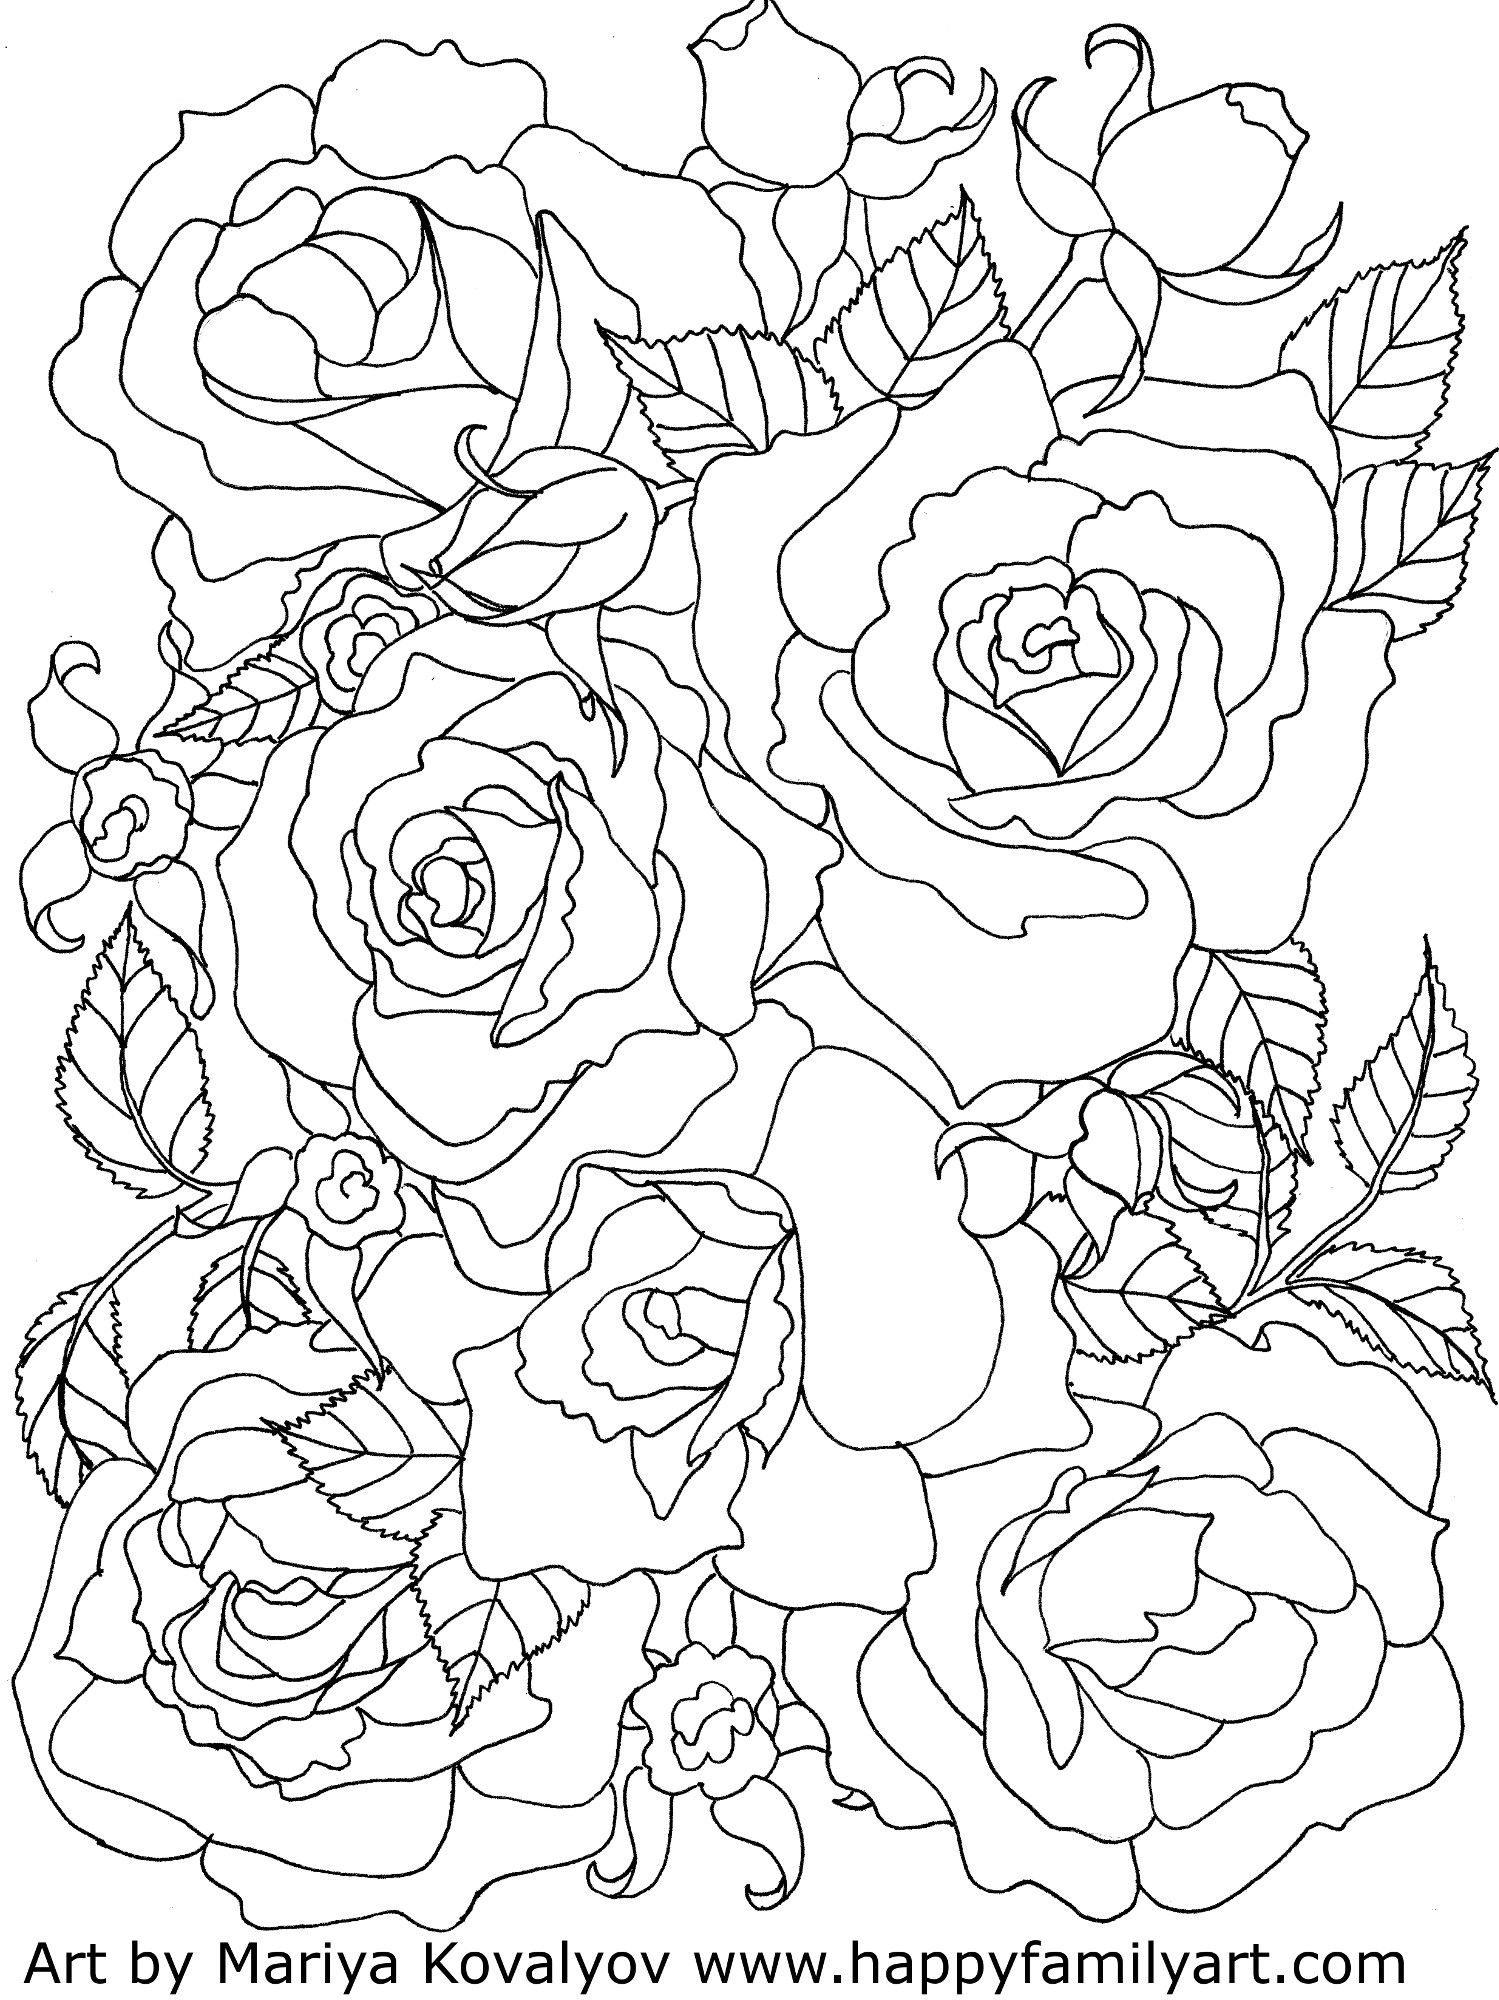 Original And Fun Coloring Pages | Adult Coloring | Cool